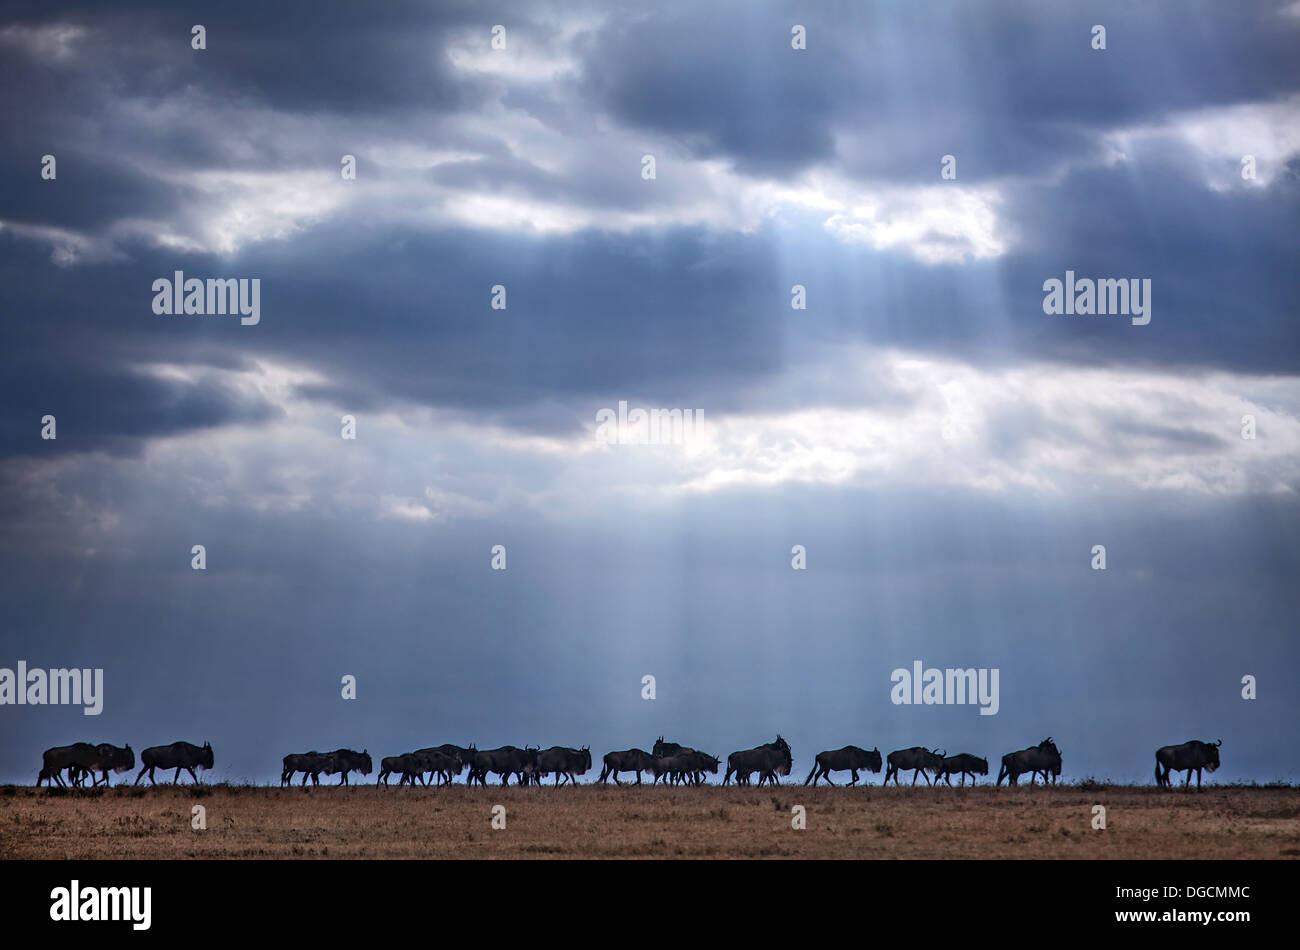 Shafts of light illuminate a migrating herd of wildebeest. - Stock Image